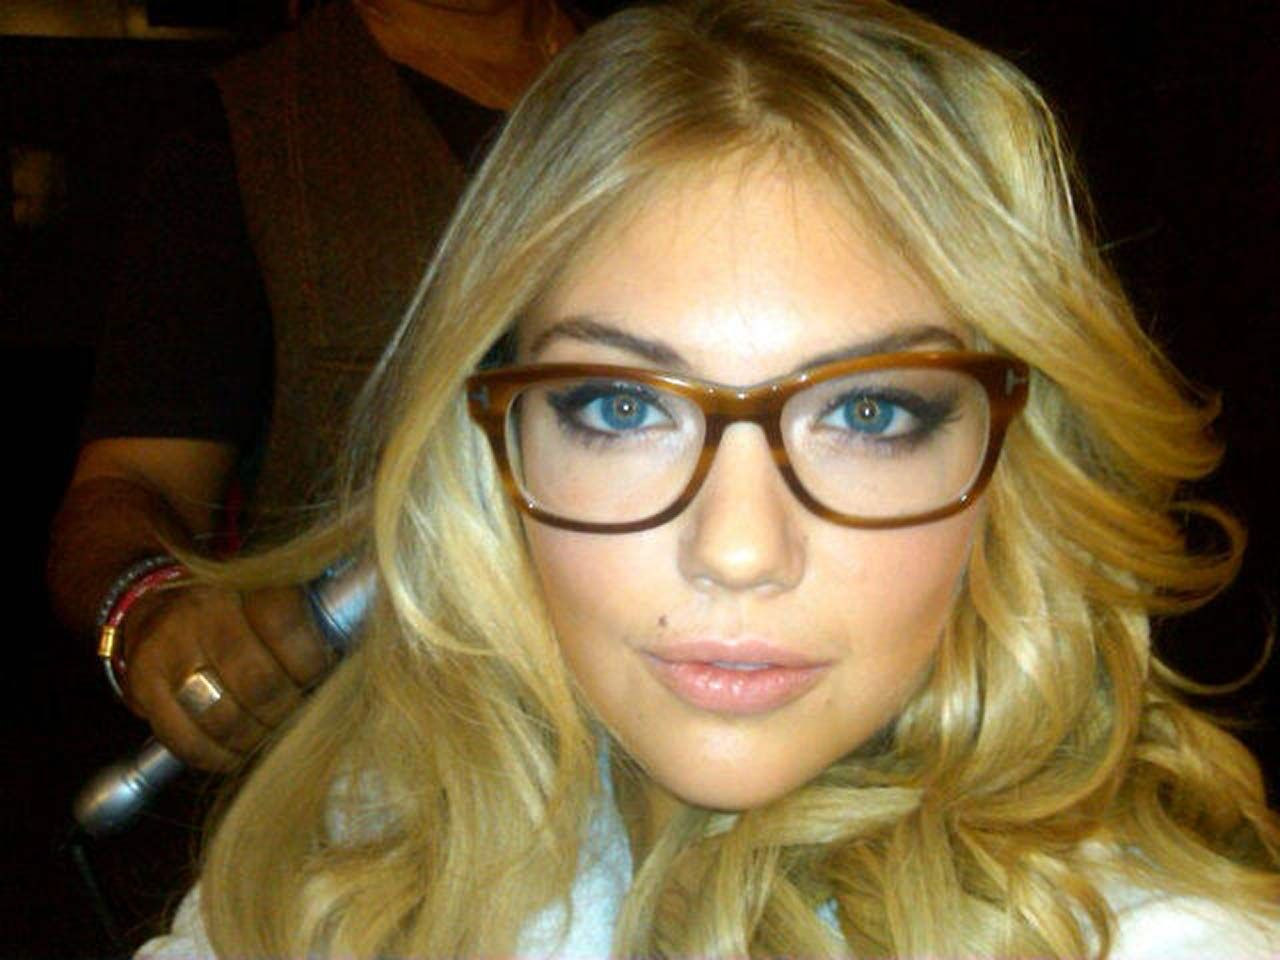 Kate Upton Nude Leaked The Fappening 0028